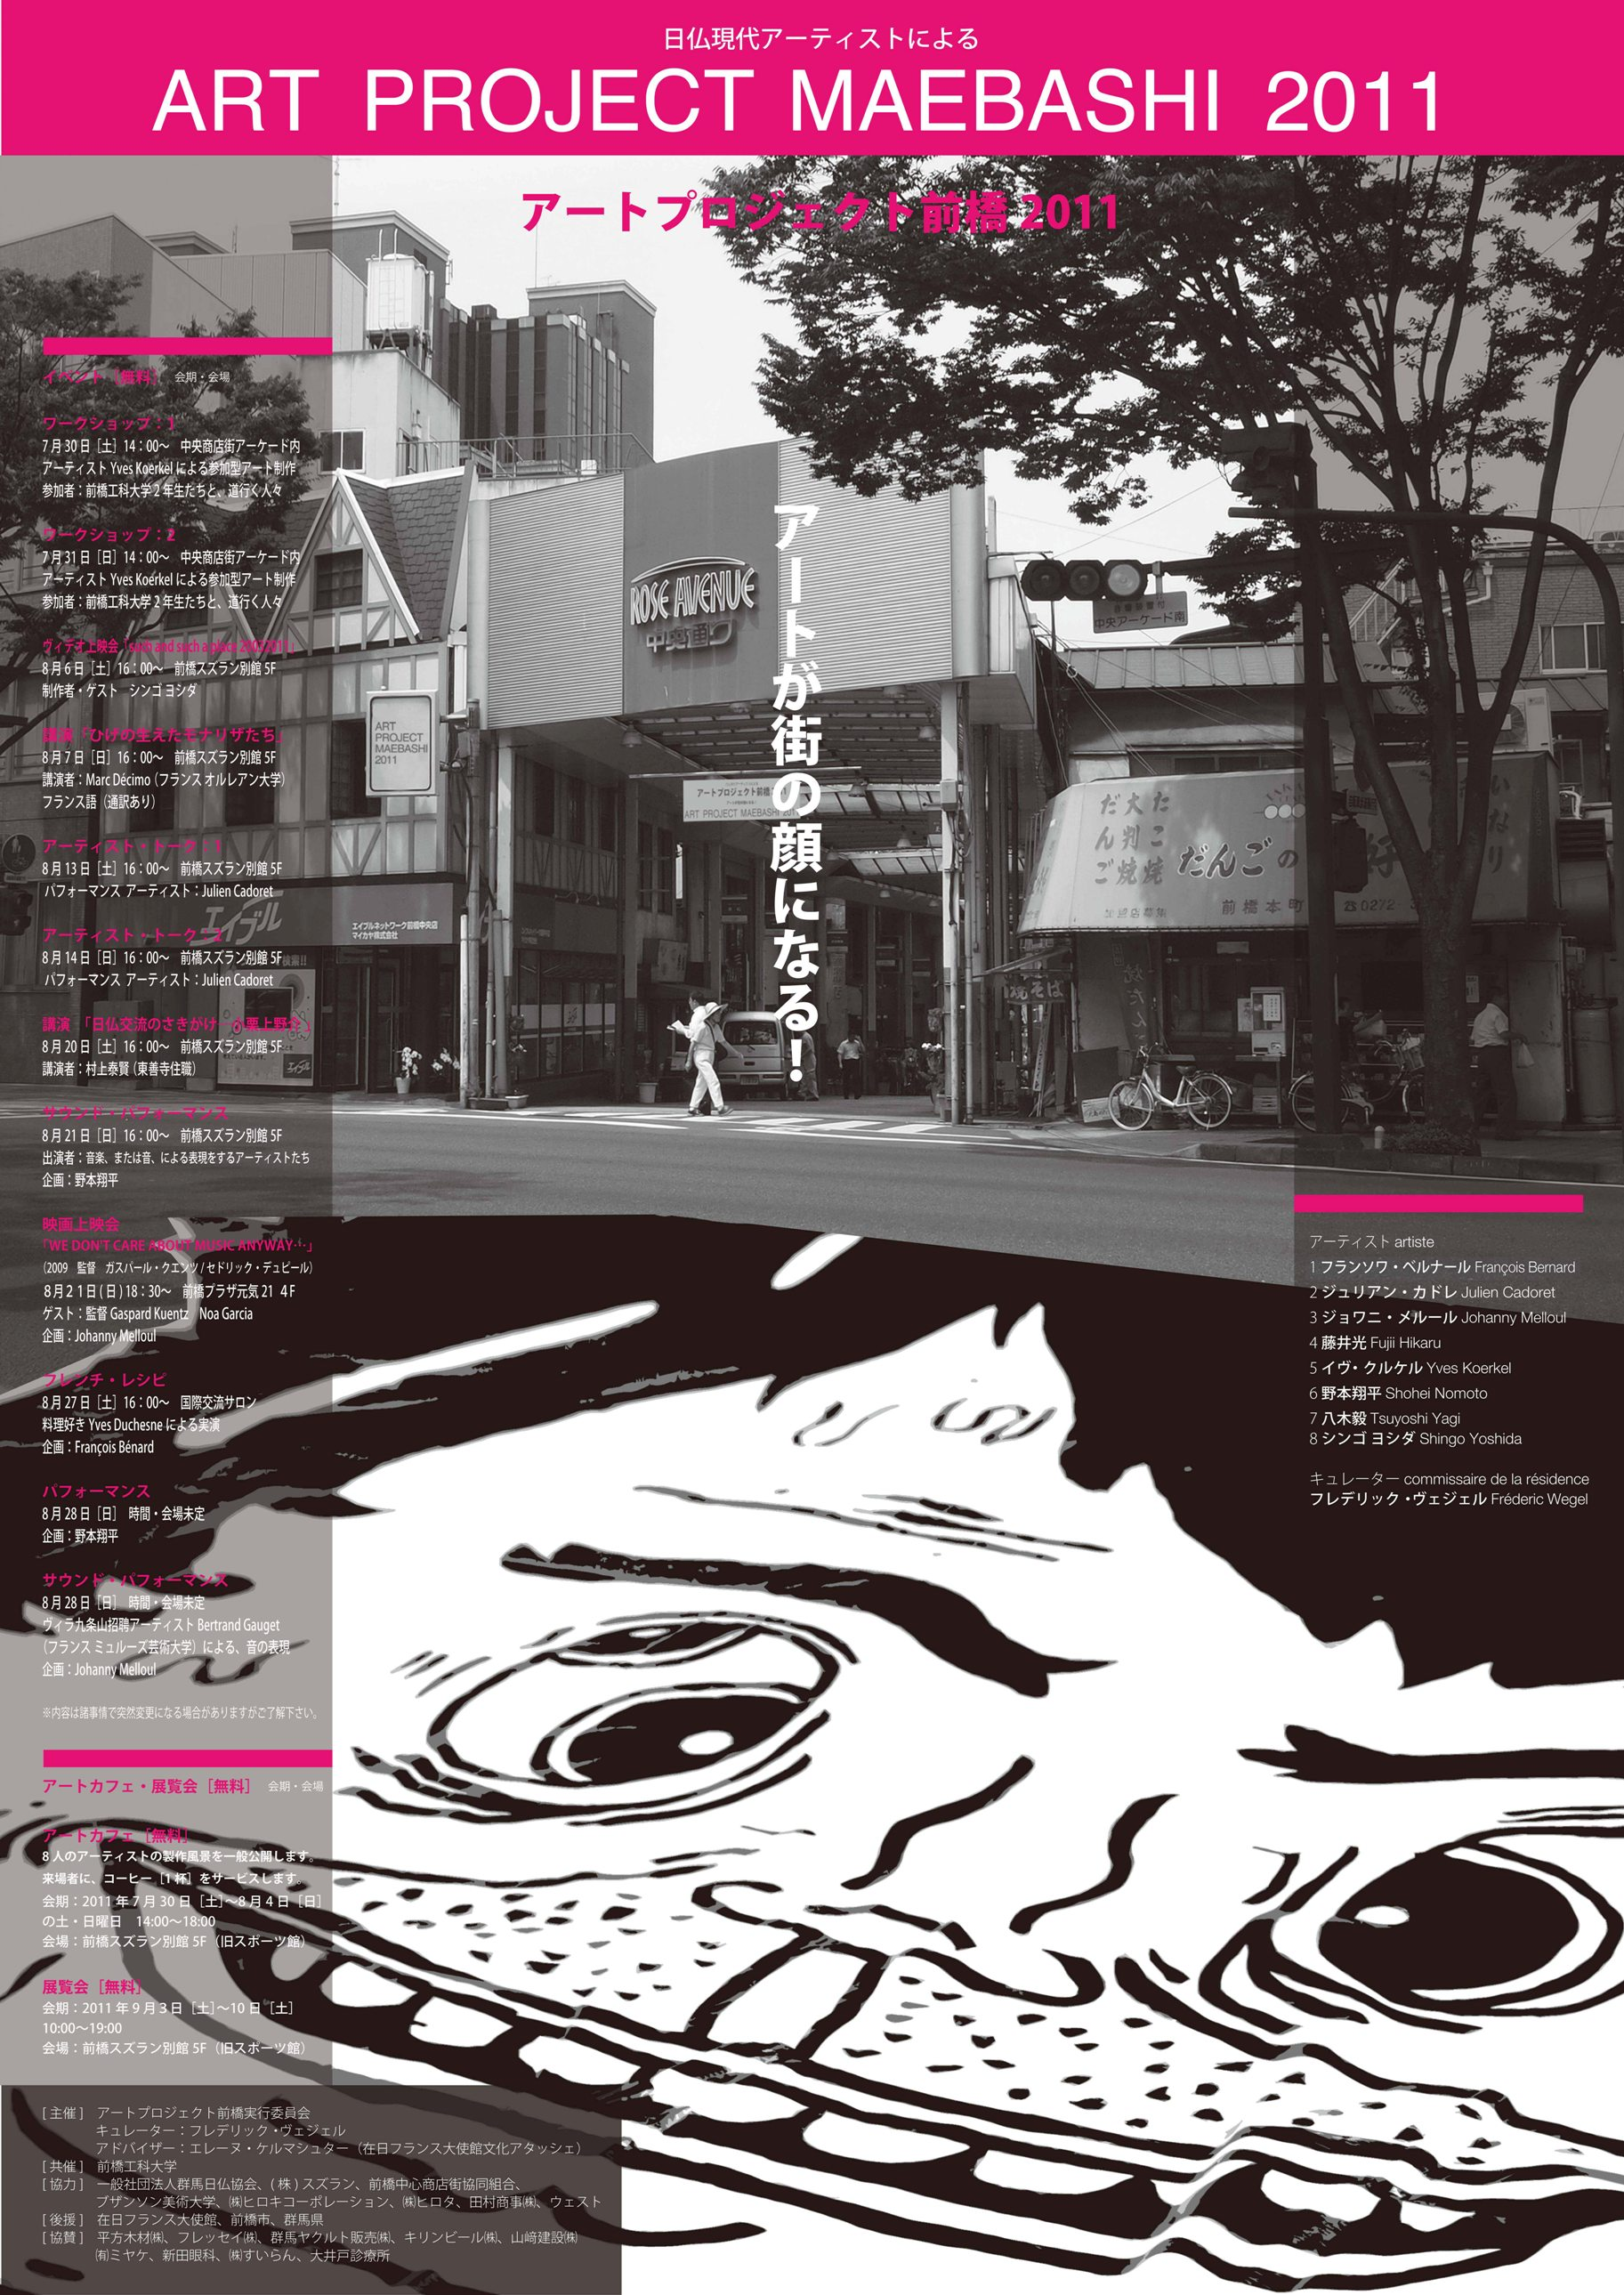 art-project-maebashi-poster